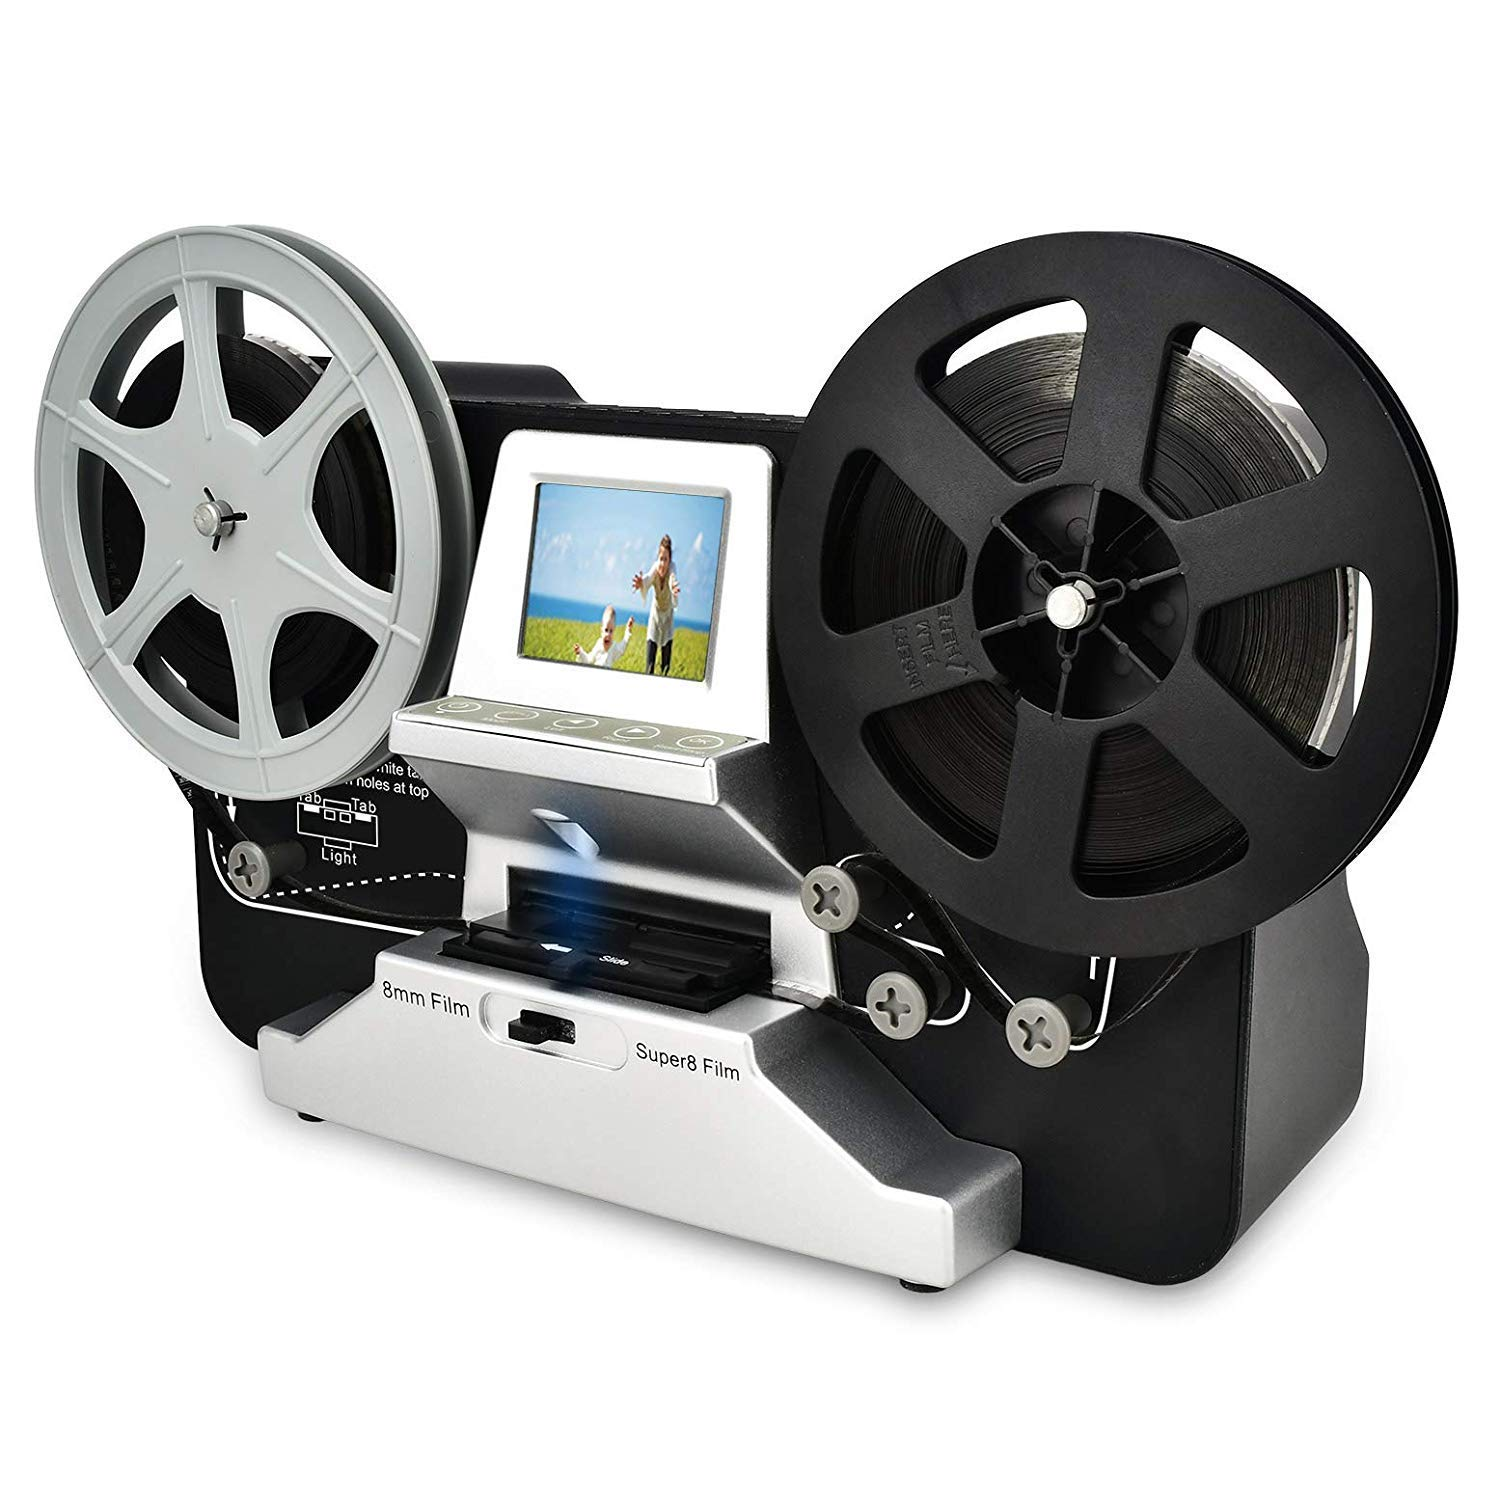 Cotok 8mm and Super 8 Reel Photo Scanner - photo scanners